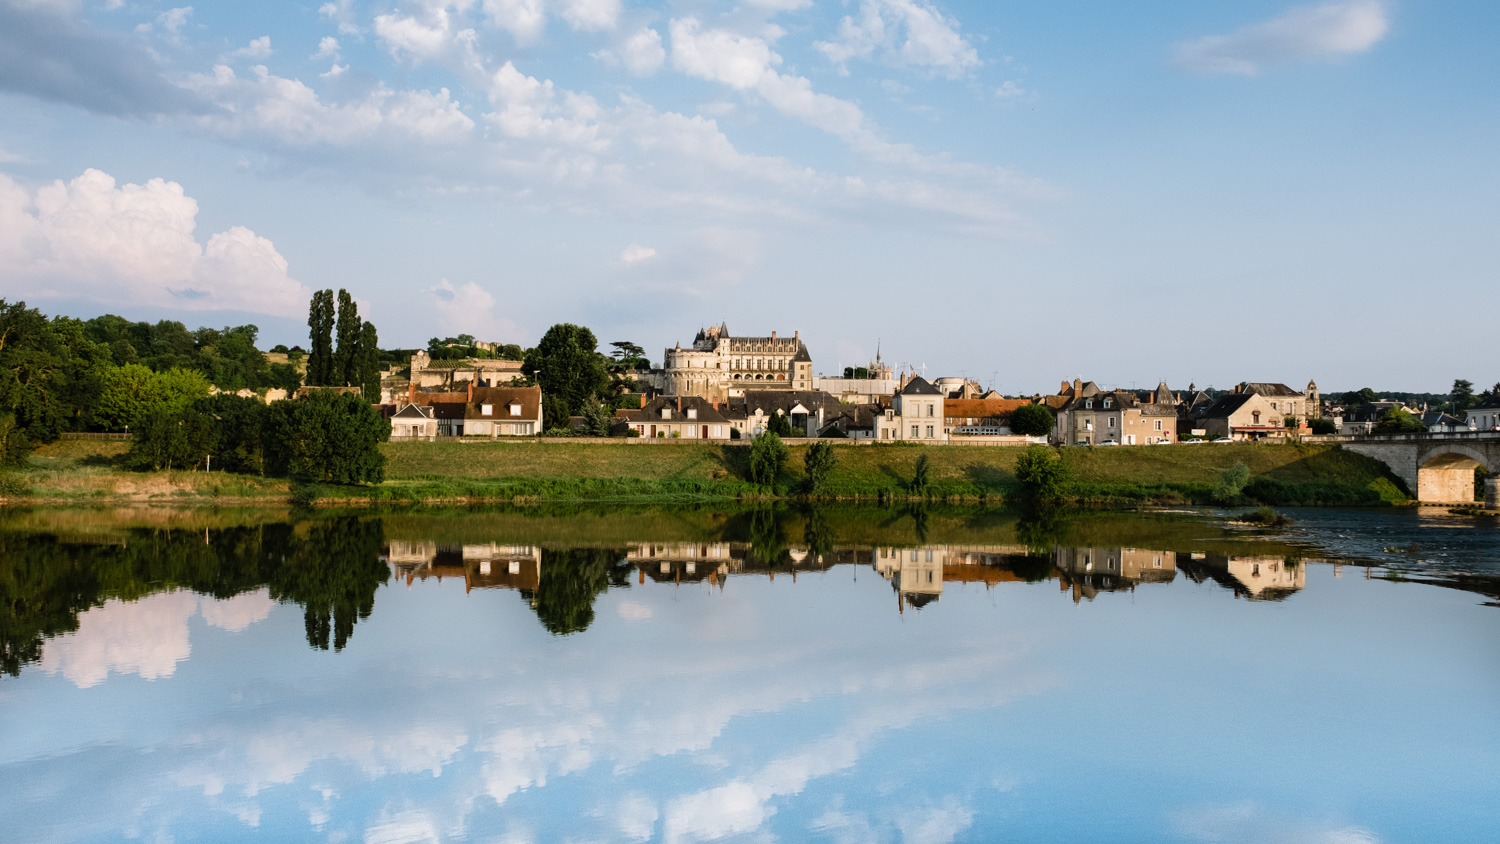 View of Amboise from across the Loire River